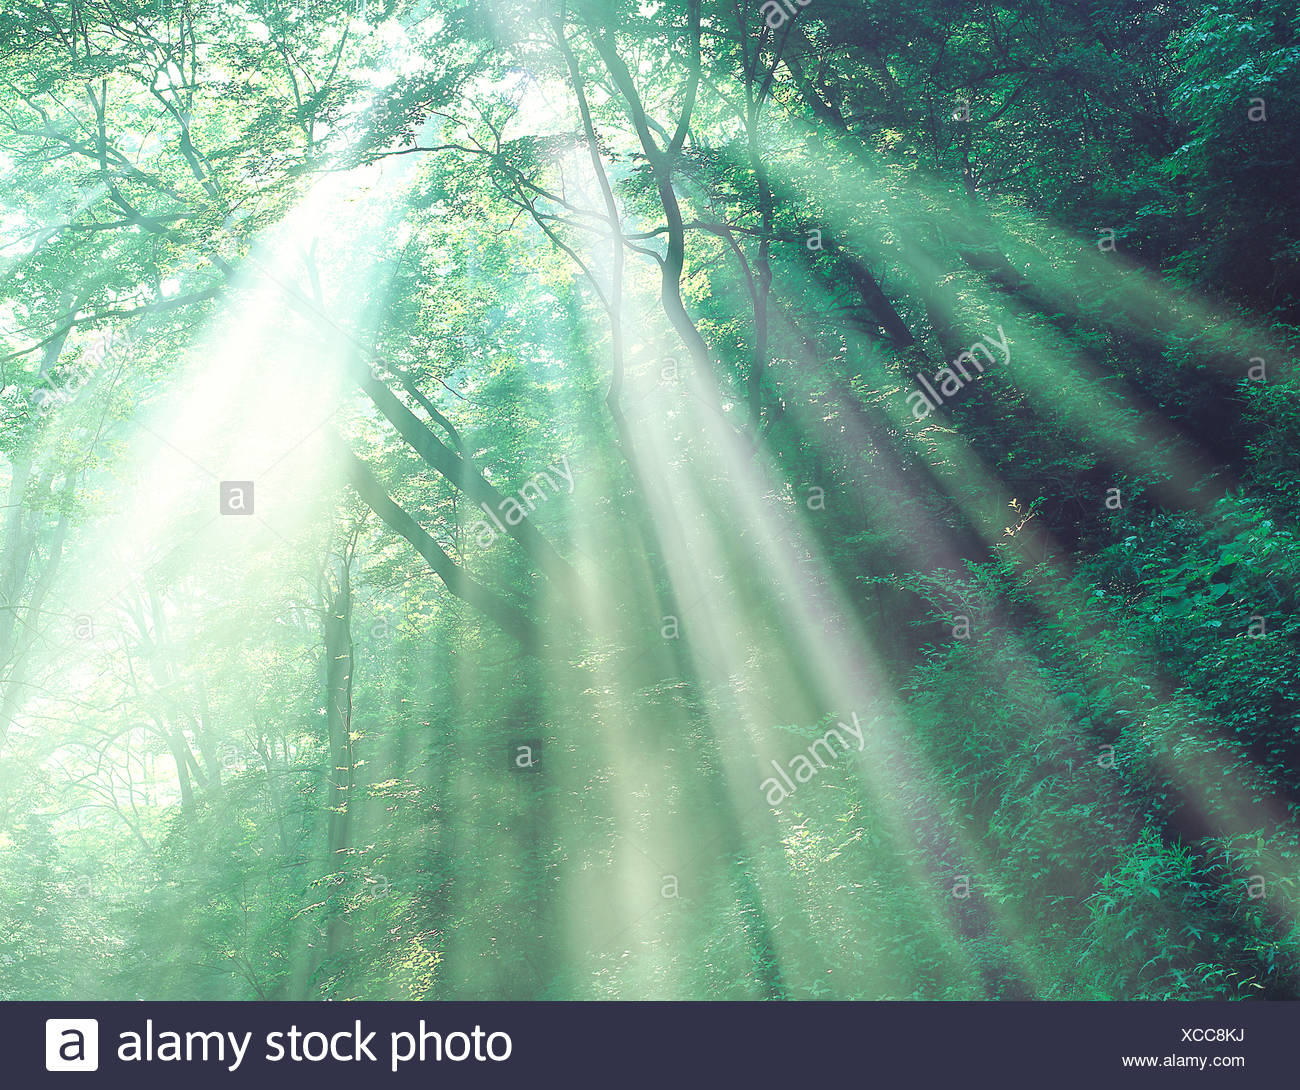 View of sunshine amid trees - Stock Image